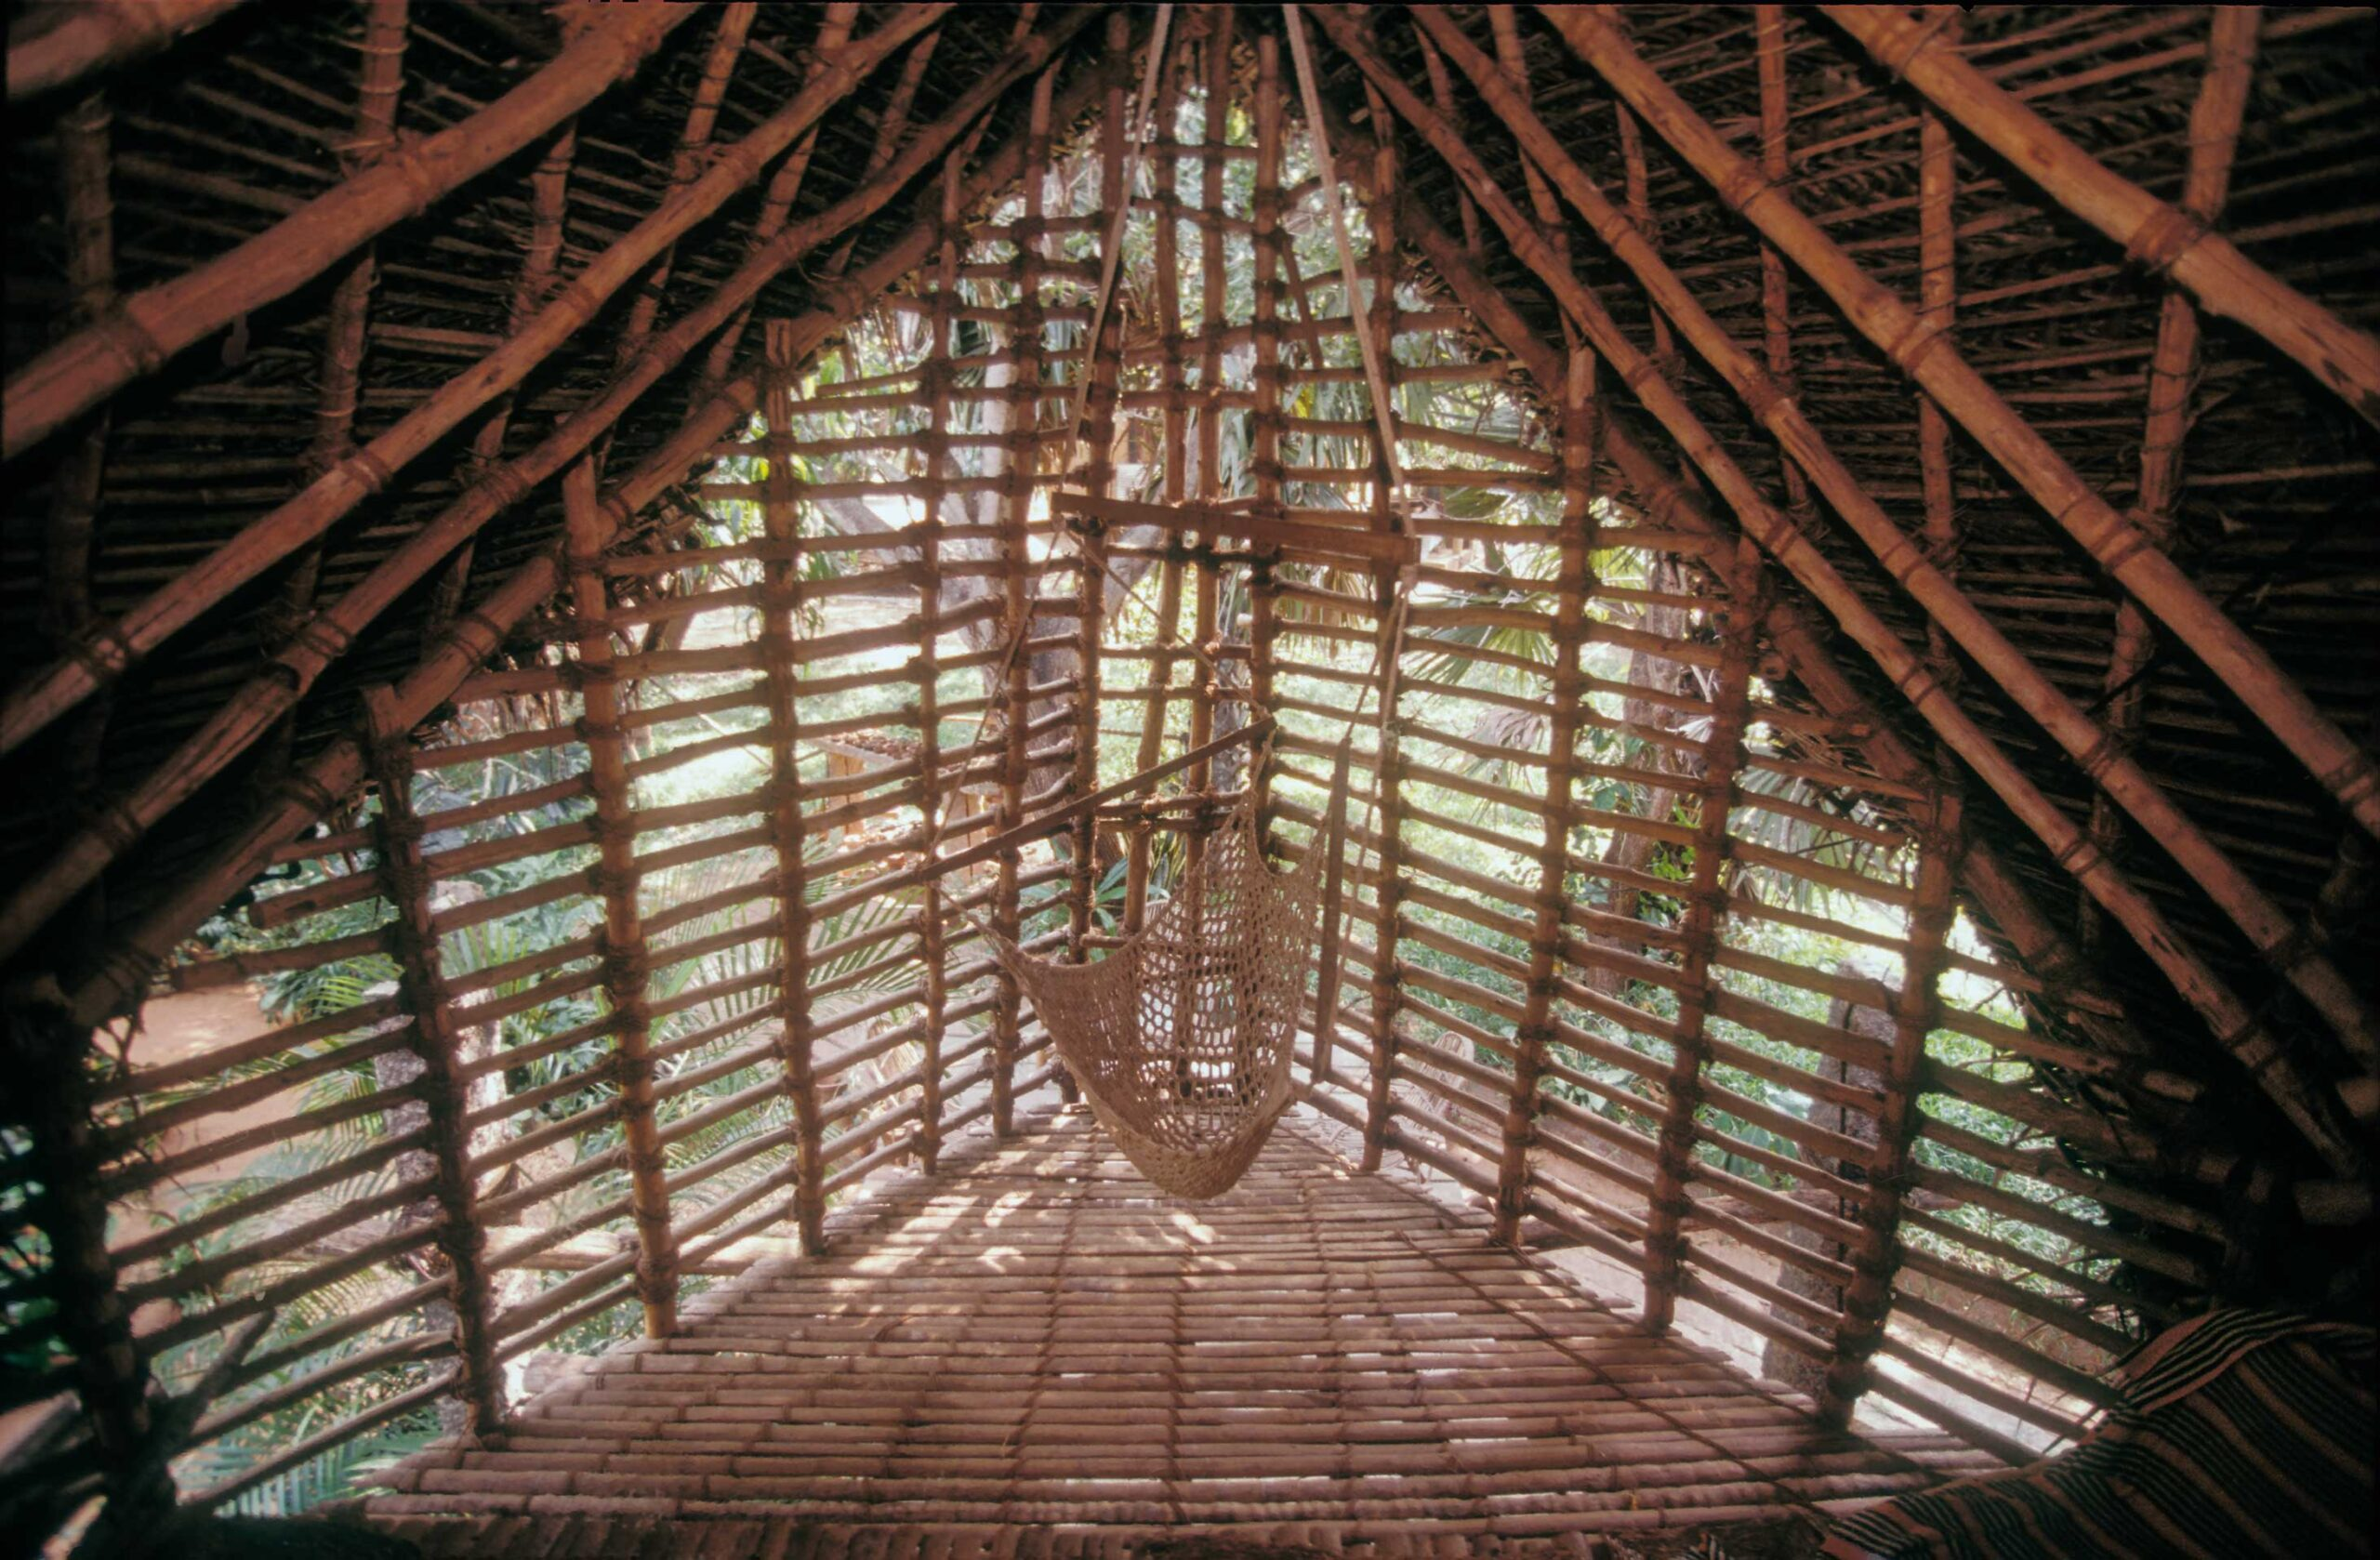 Joists were cut out of really old (around 50 years old) casuarina trees and are far stronger than people expect, at that age. Credit: Andreas-Deffner